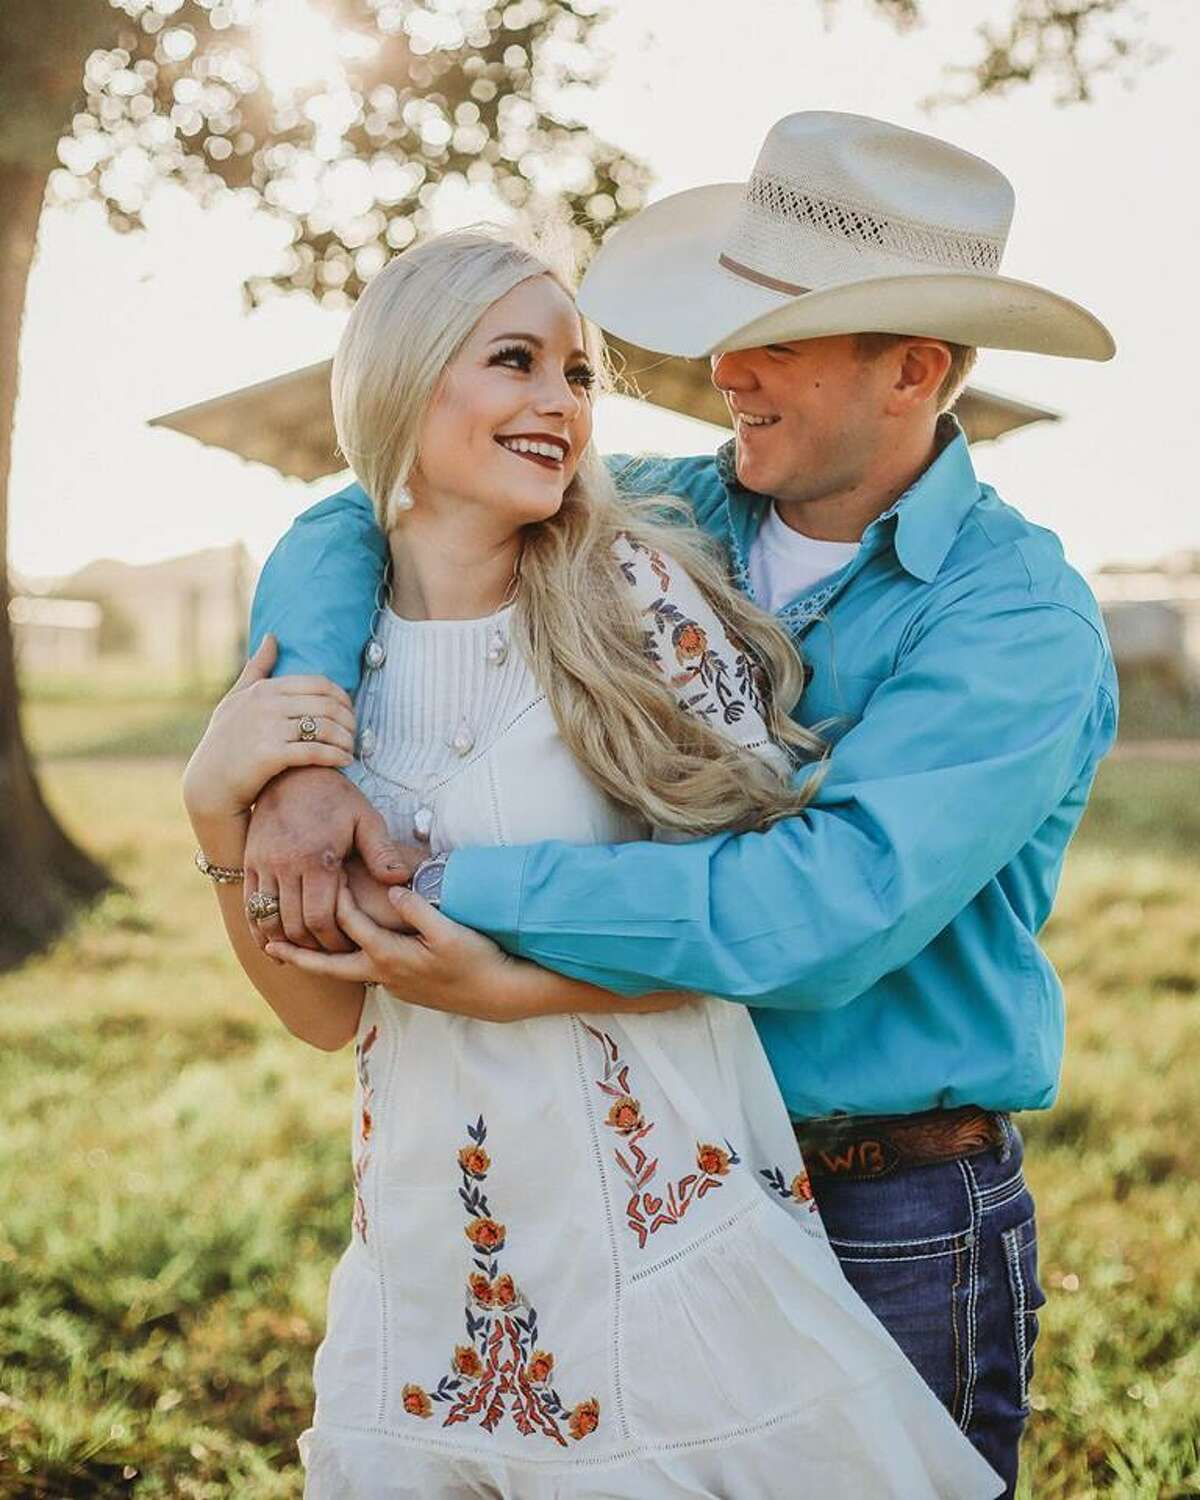 Newlyweds Bailee Ackerman Byler, left, and Will Byler, seen in an undated photo provided Sunday, Nov. 4, 2018 by a family friend, were killed in a helicopter crash in Uvalde County early Sunday morning, Nov. 4, 2018. The couple had just been married and were flying to their honeymoon in the helicopter, according to friends of the couple.